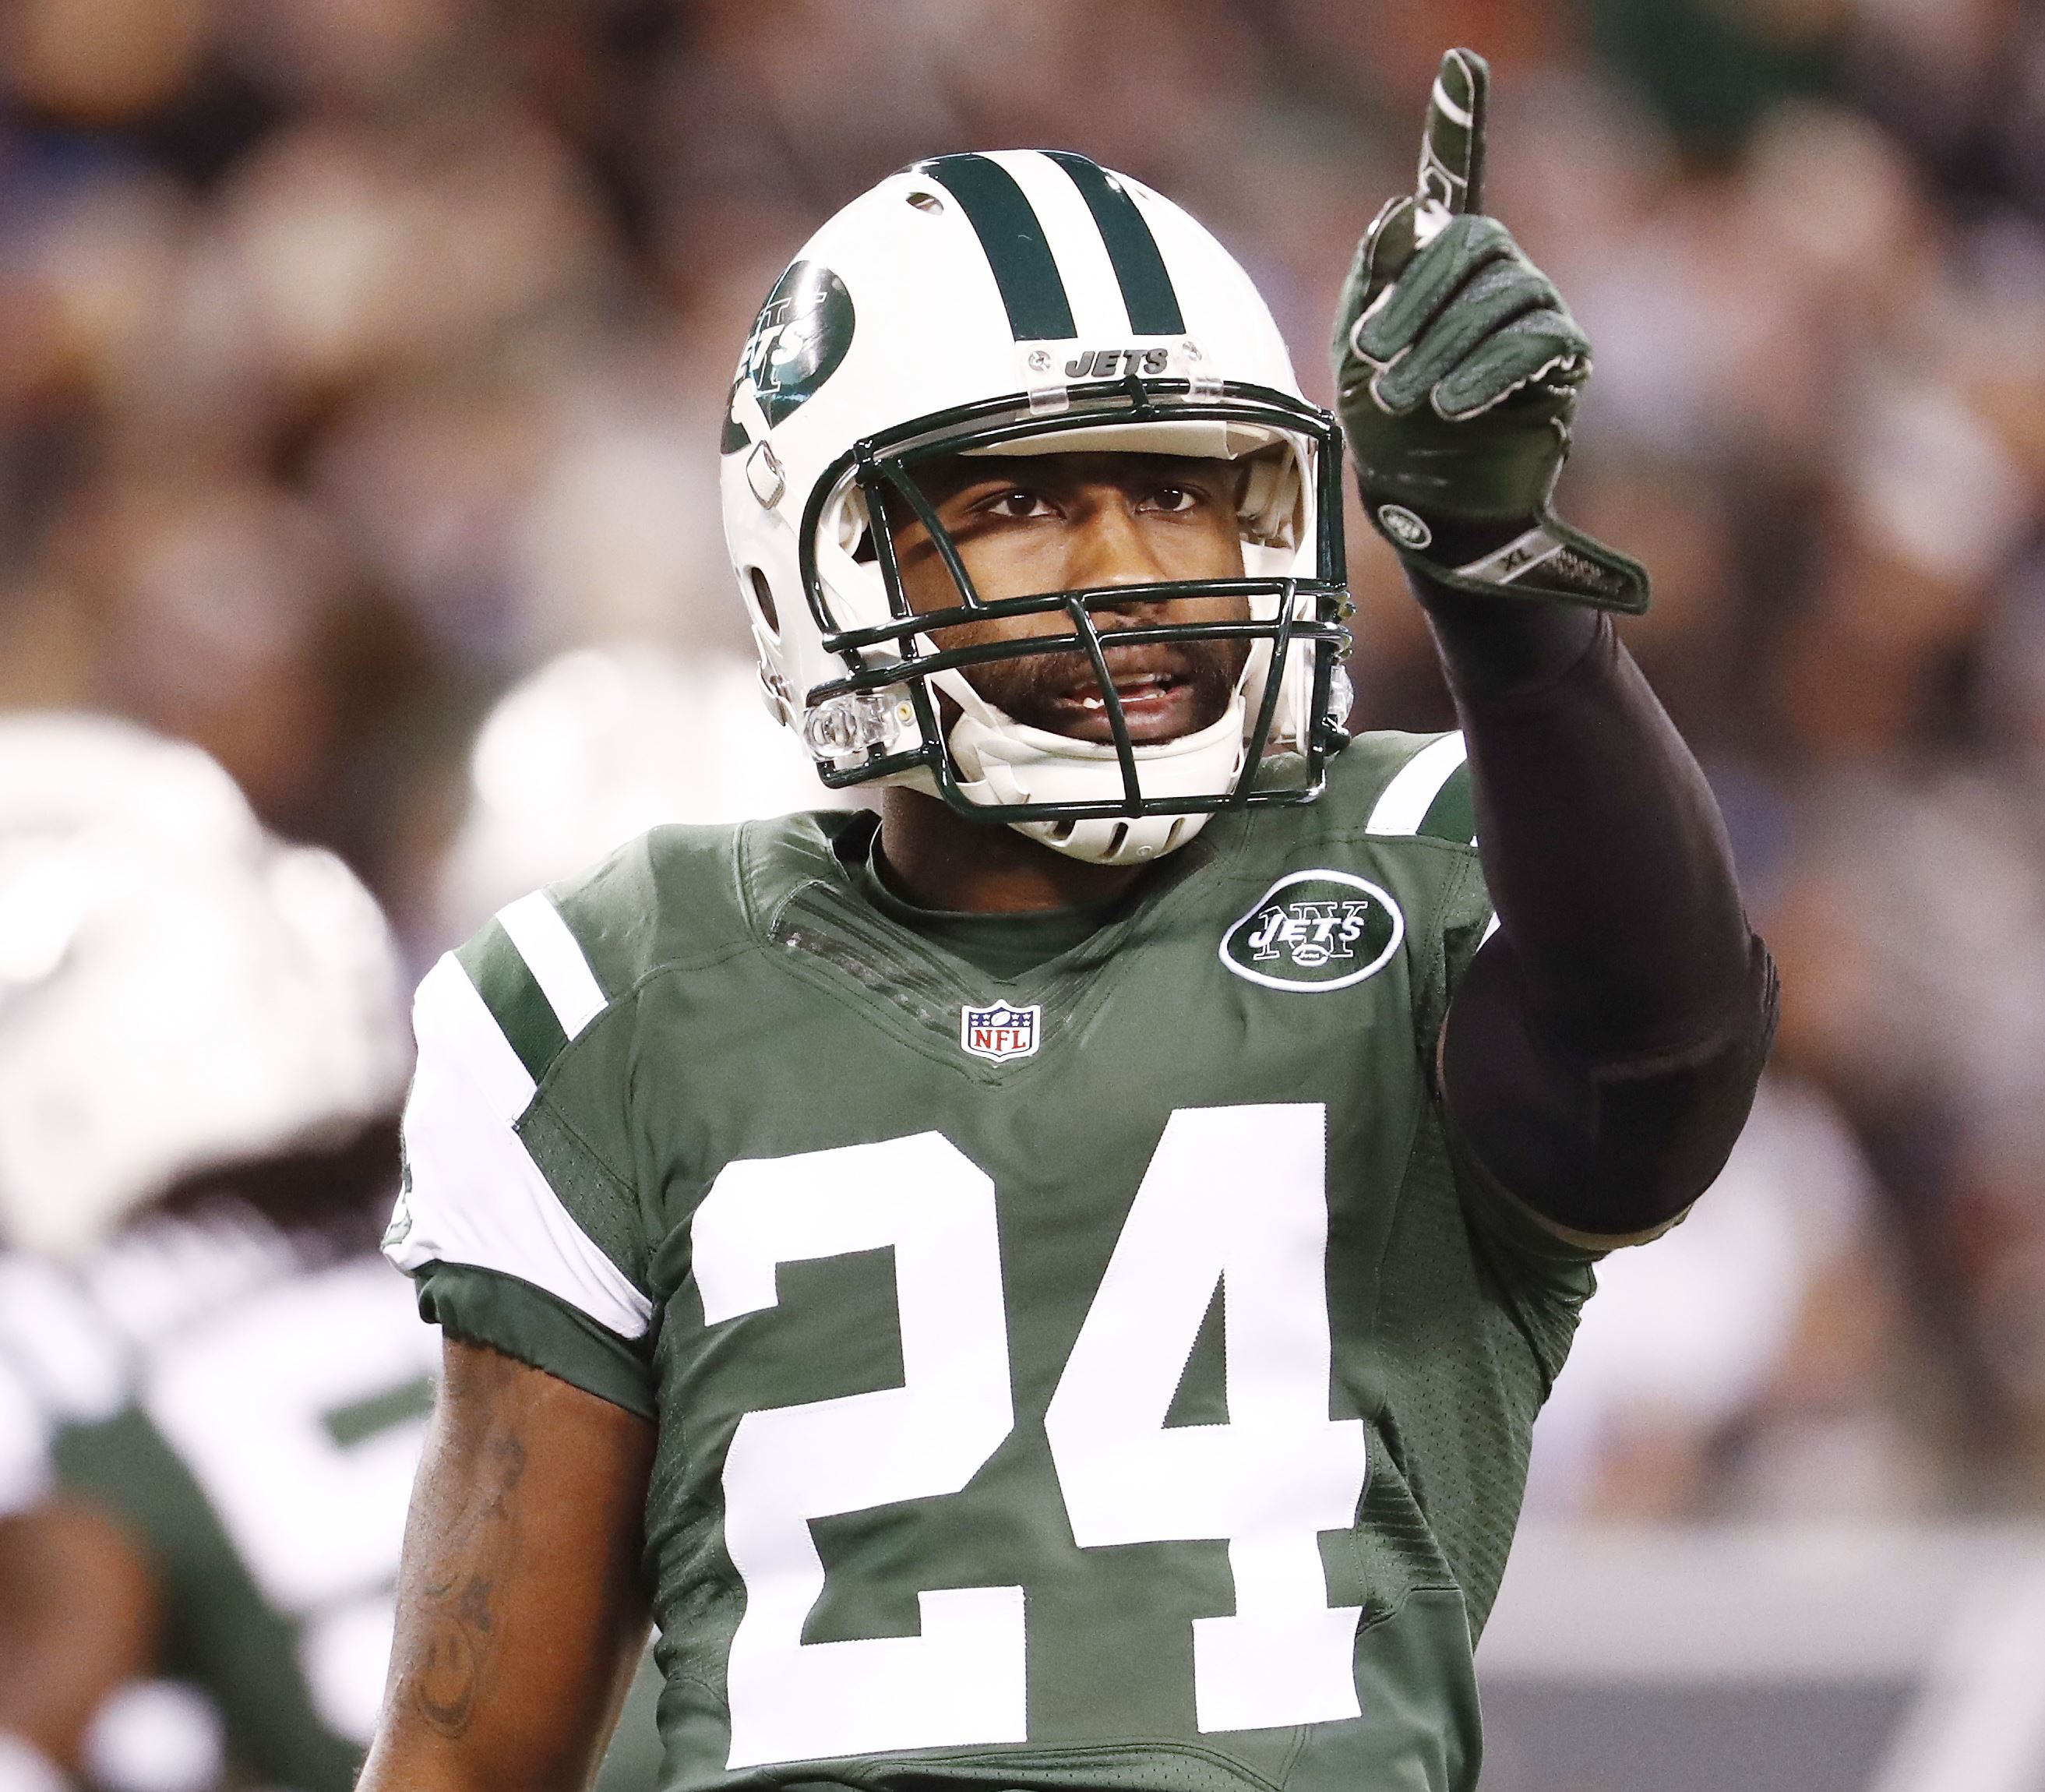 Darrelle Revis expresses desire to play for hometown Steelers after court date